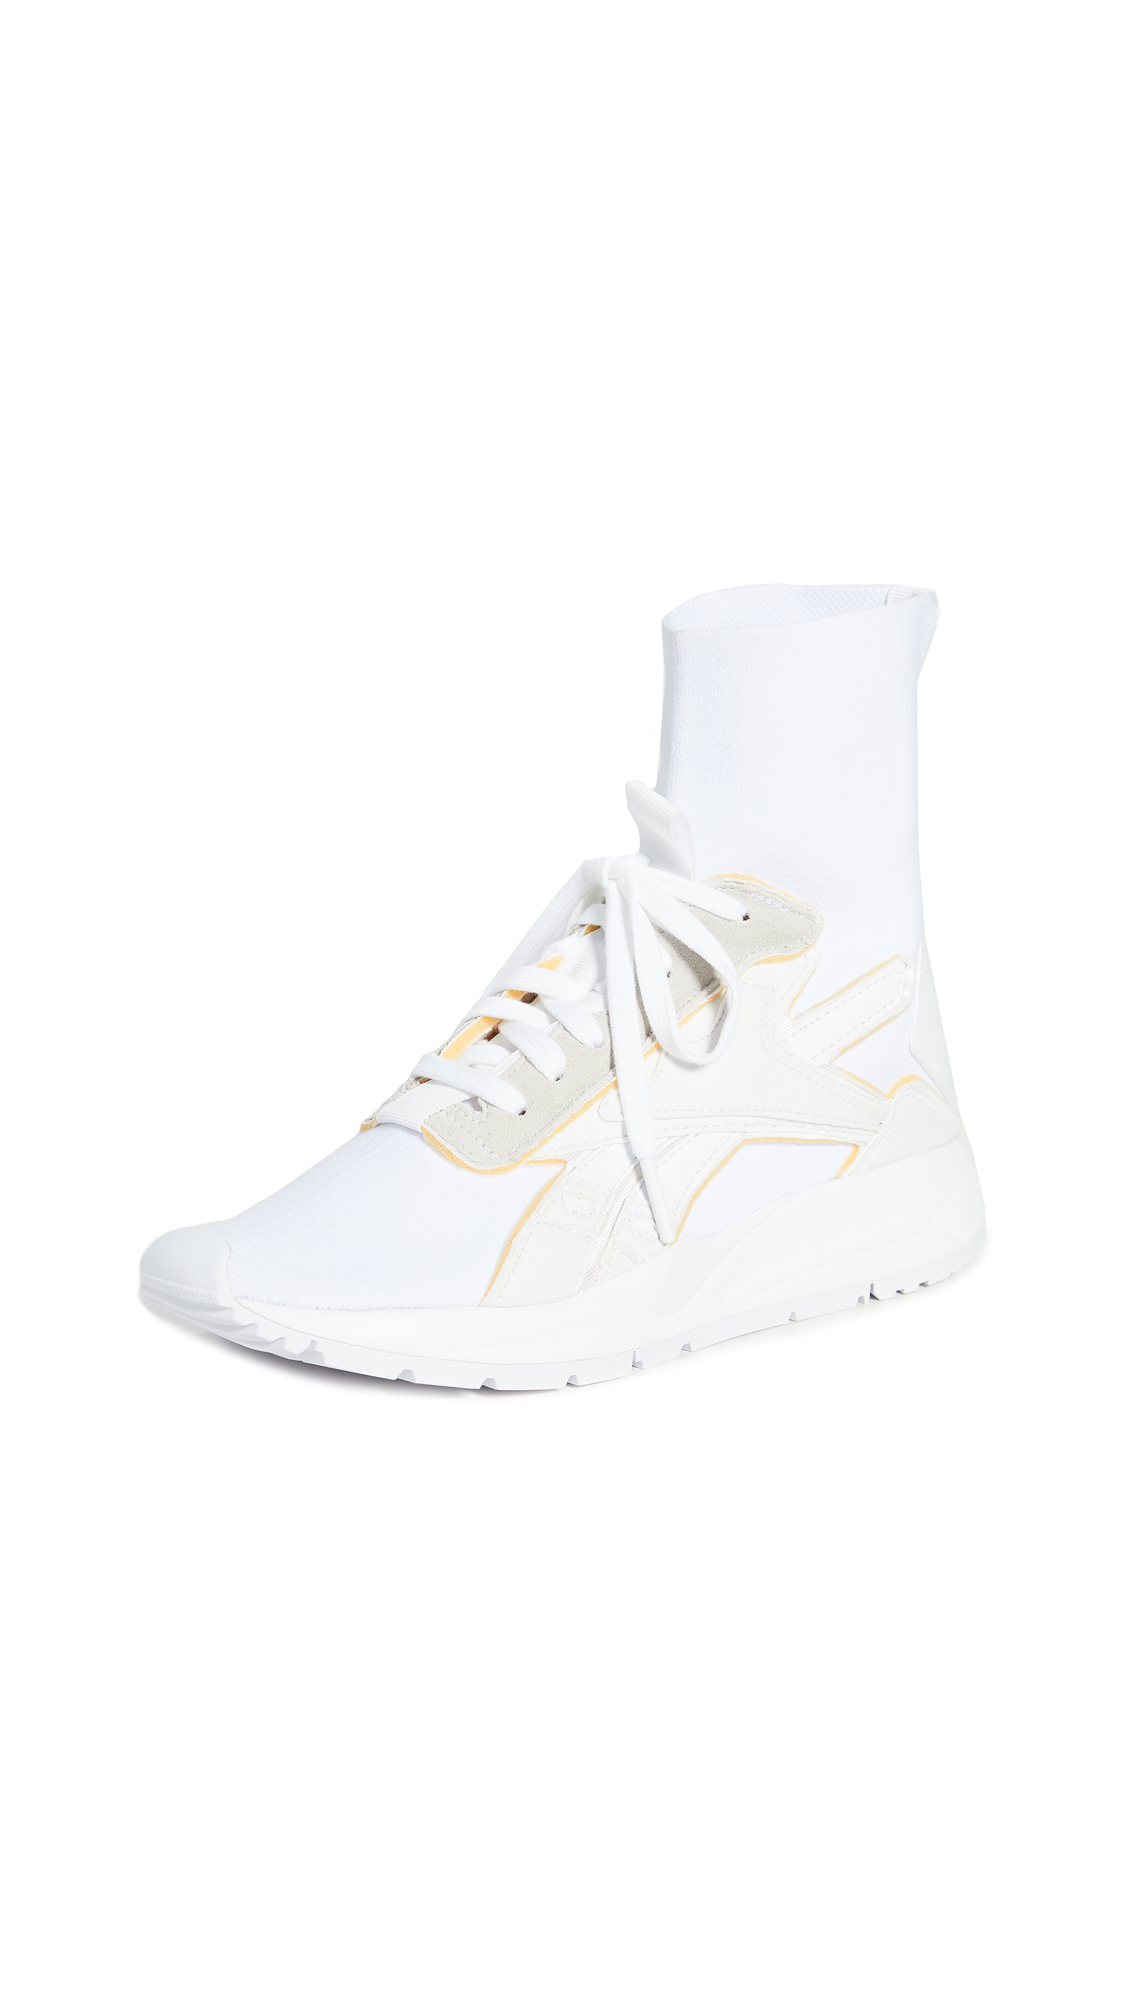 Reebok x Victoria Beckham VB Bolton Sock Sneakers – 50% Off Sale